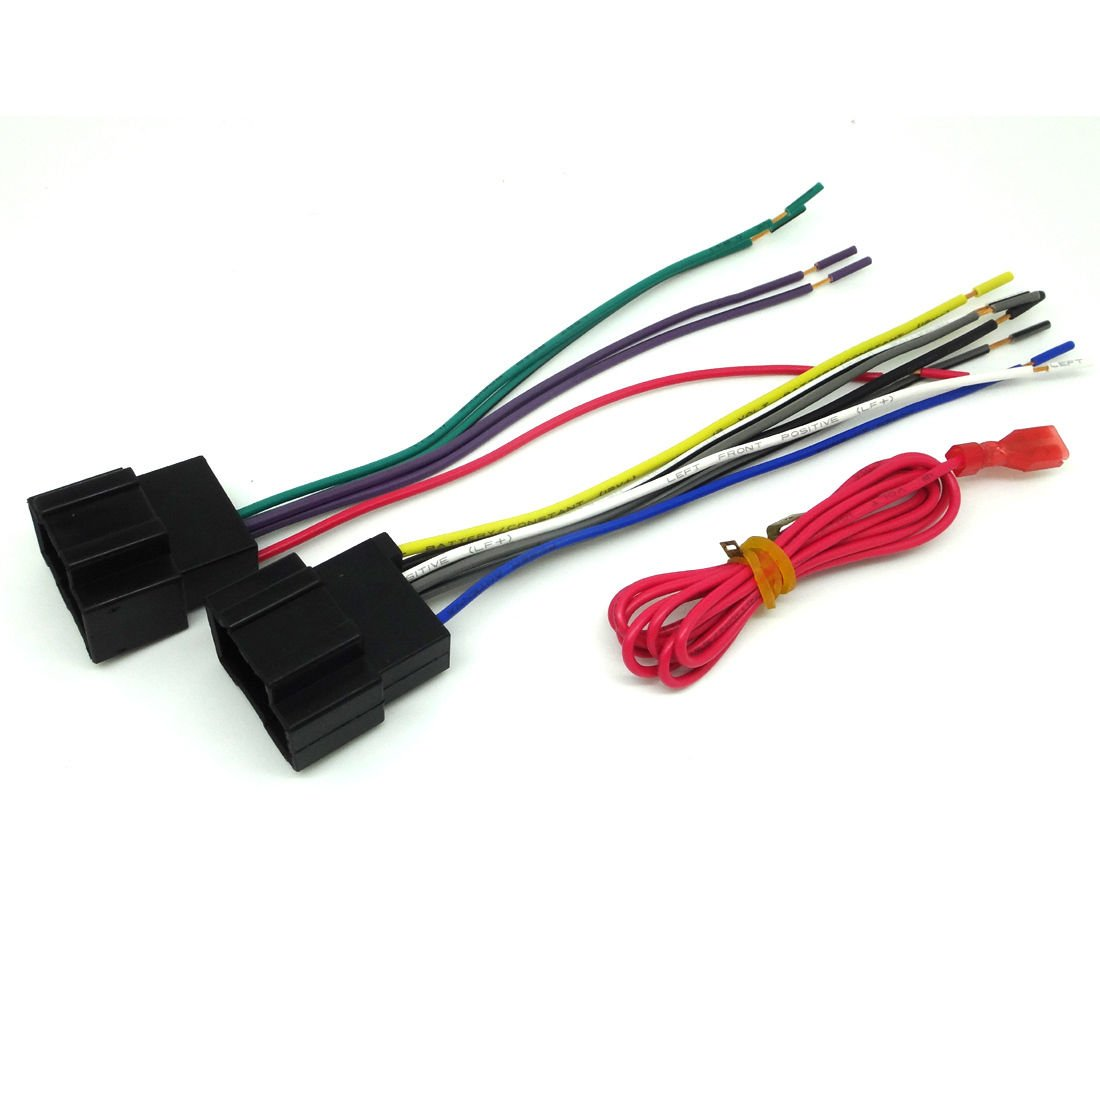 61nu0LRNVFL._SL1100_ amazon com gm car stereo cd player wiring harness wire  at bakdesigns.co